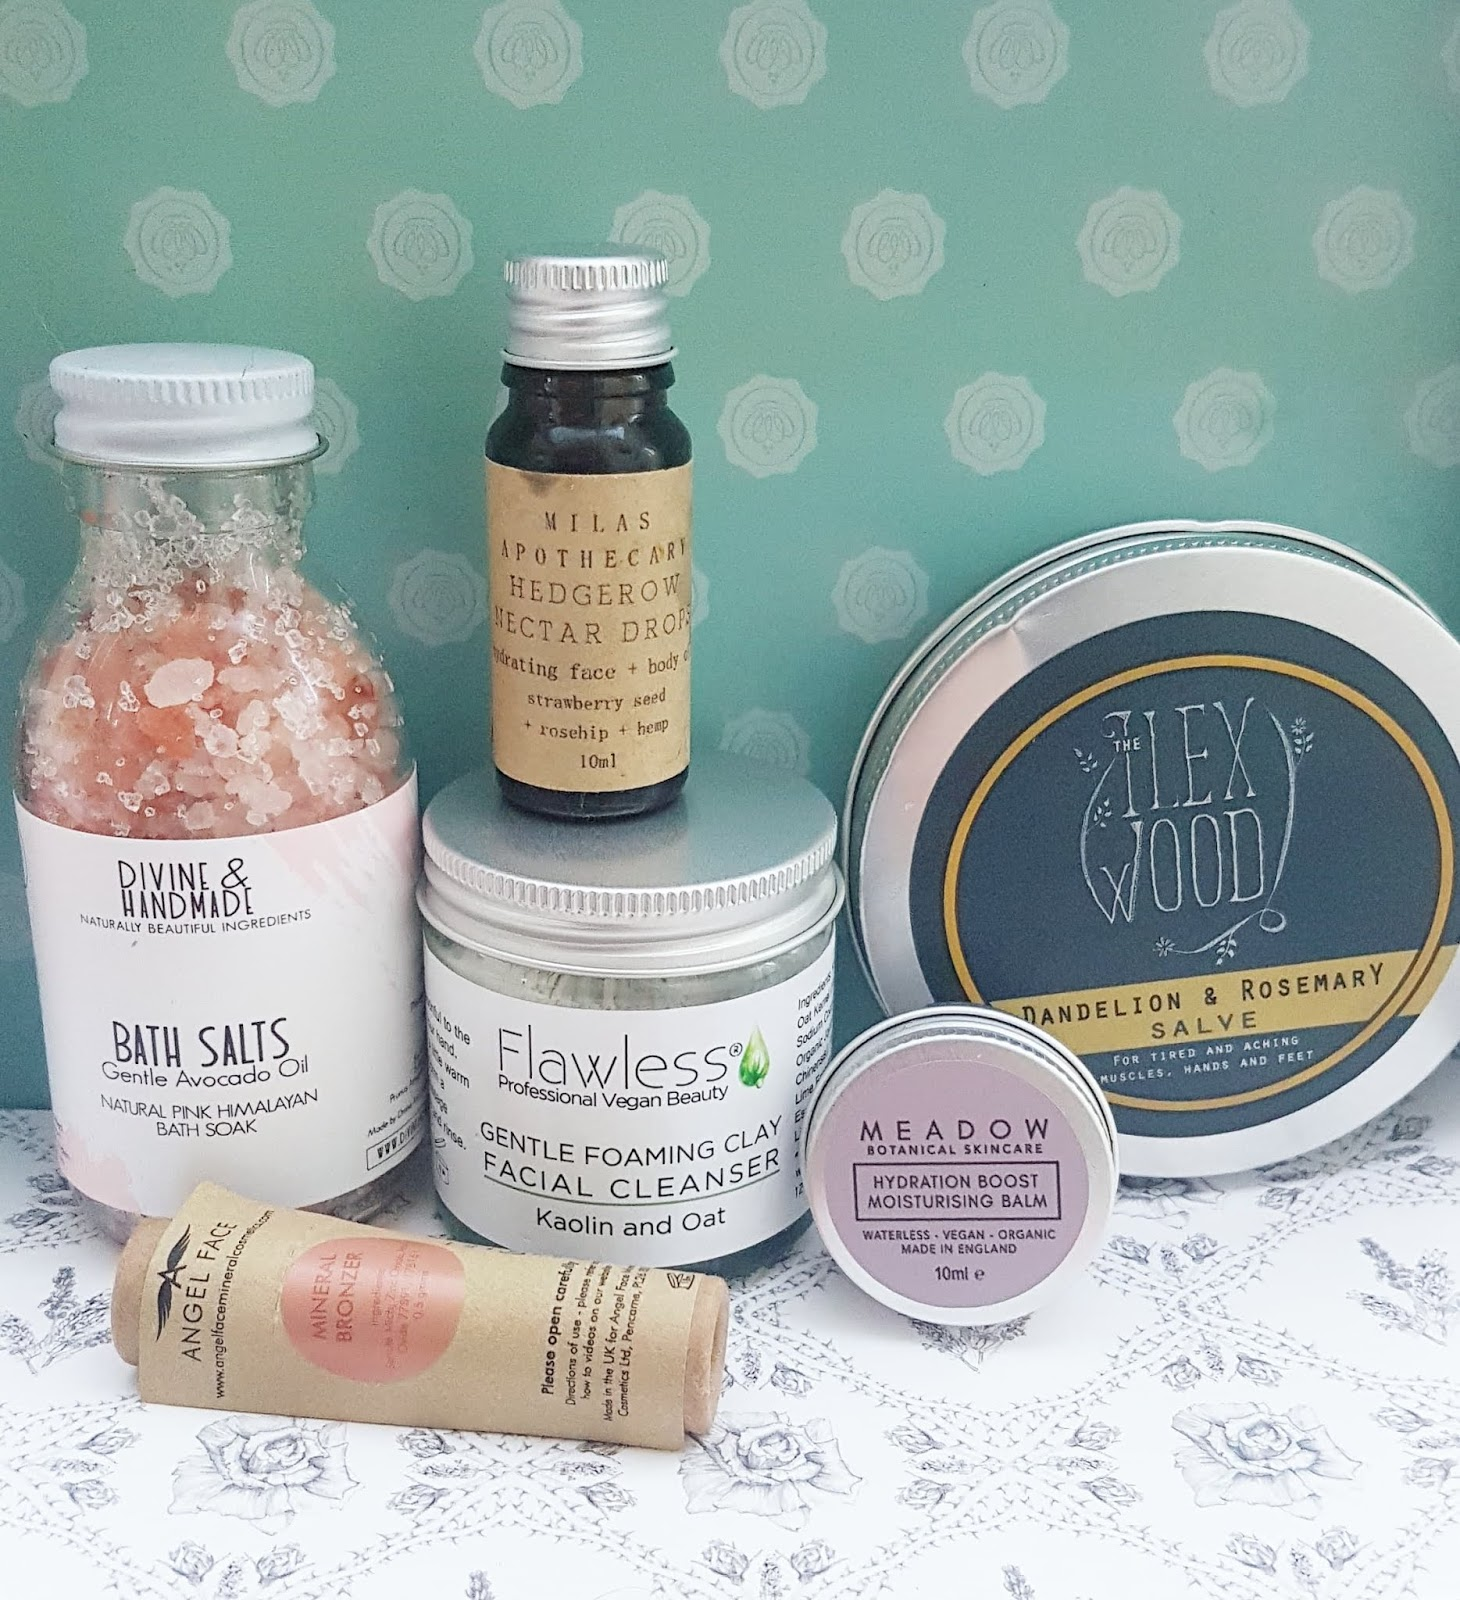 The Natural Beauty Box Review - Summer Glow Plastic Free